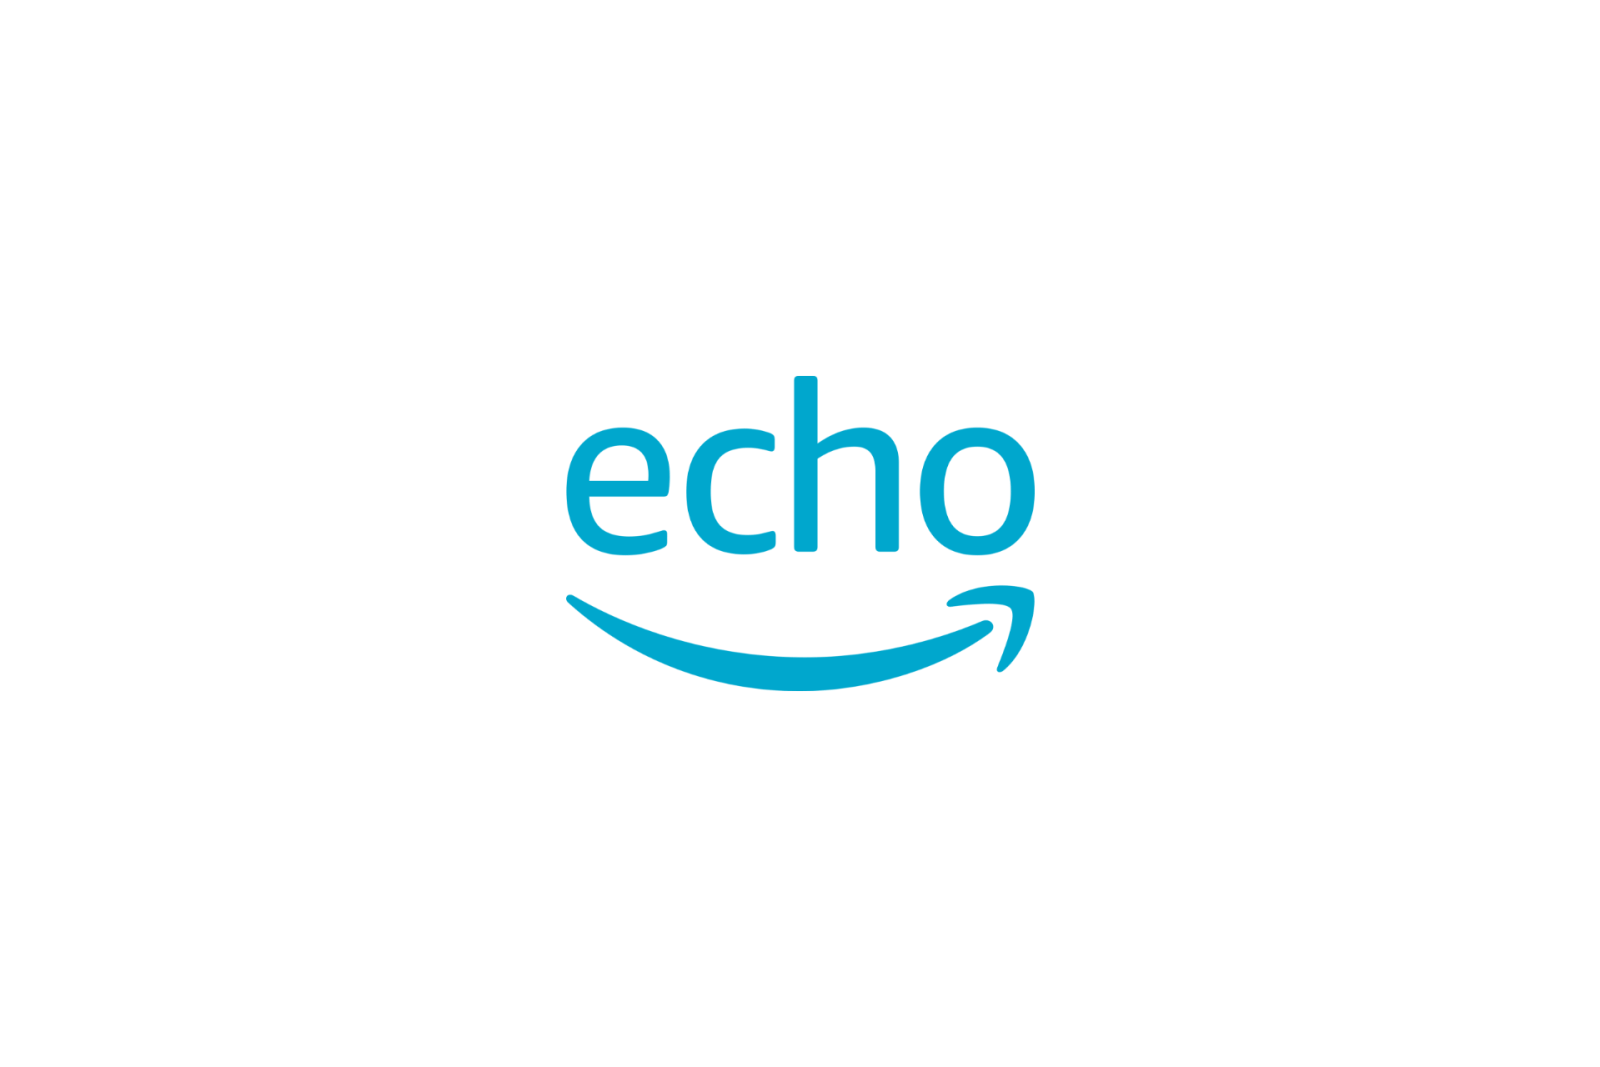 Amazon announced Echo, Echo Dot, and Echo Dot with a clock with new spherical designs